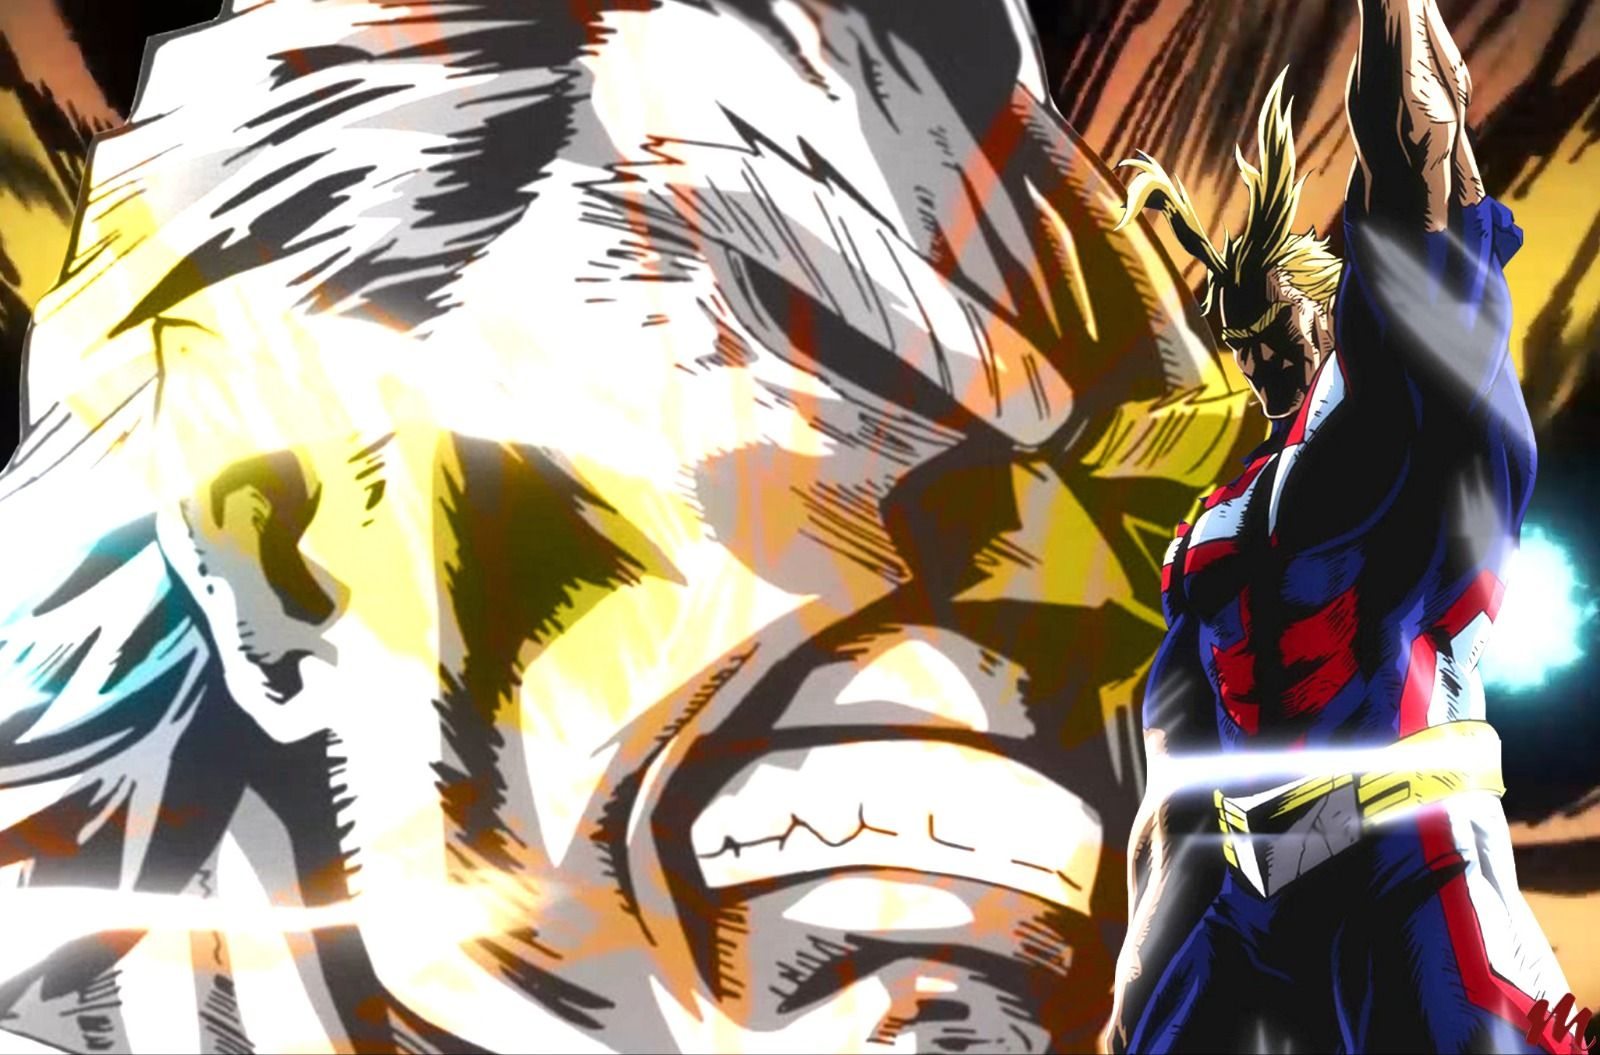 Boku no hero all might wallpapers : BokuNoHeroAcademia